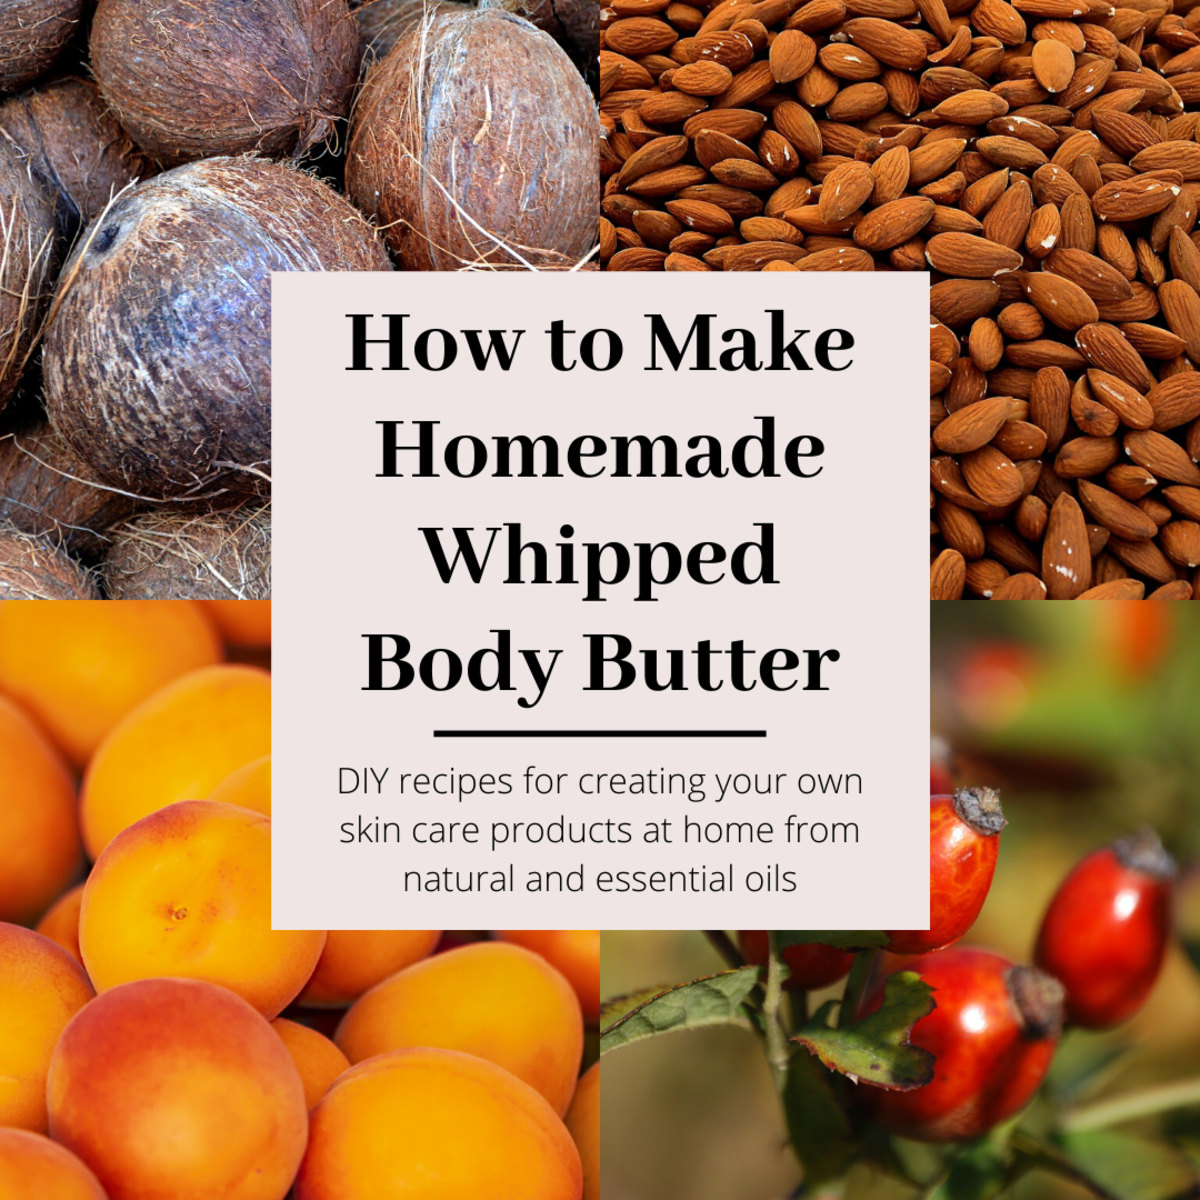 This article will show you how to make your own whipped body butter and provide information on which natural and essential oils might be right for you.